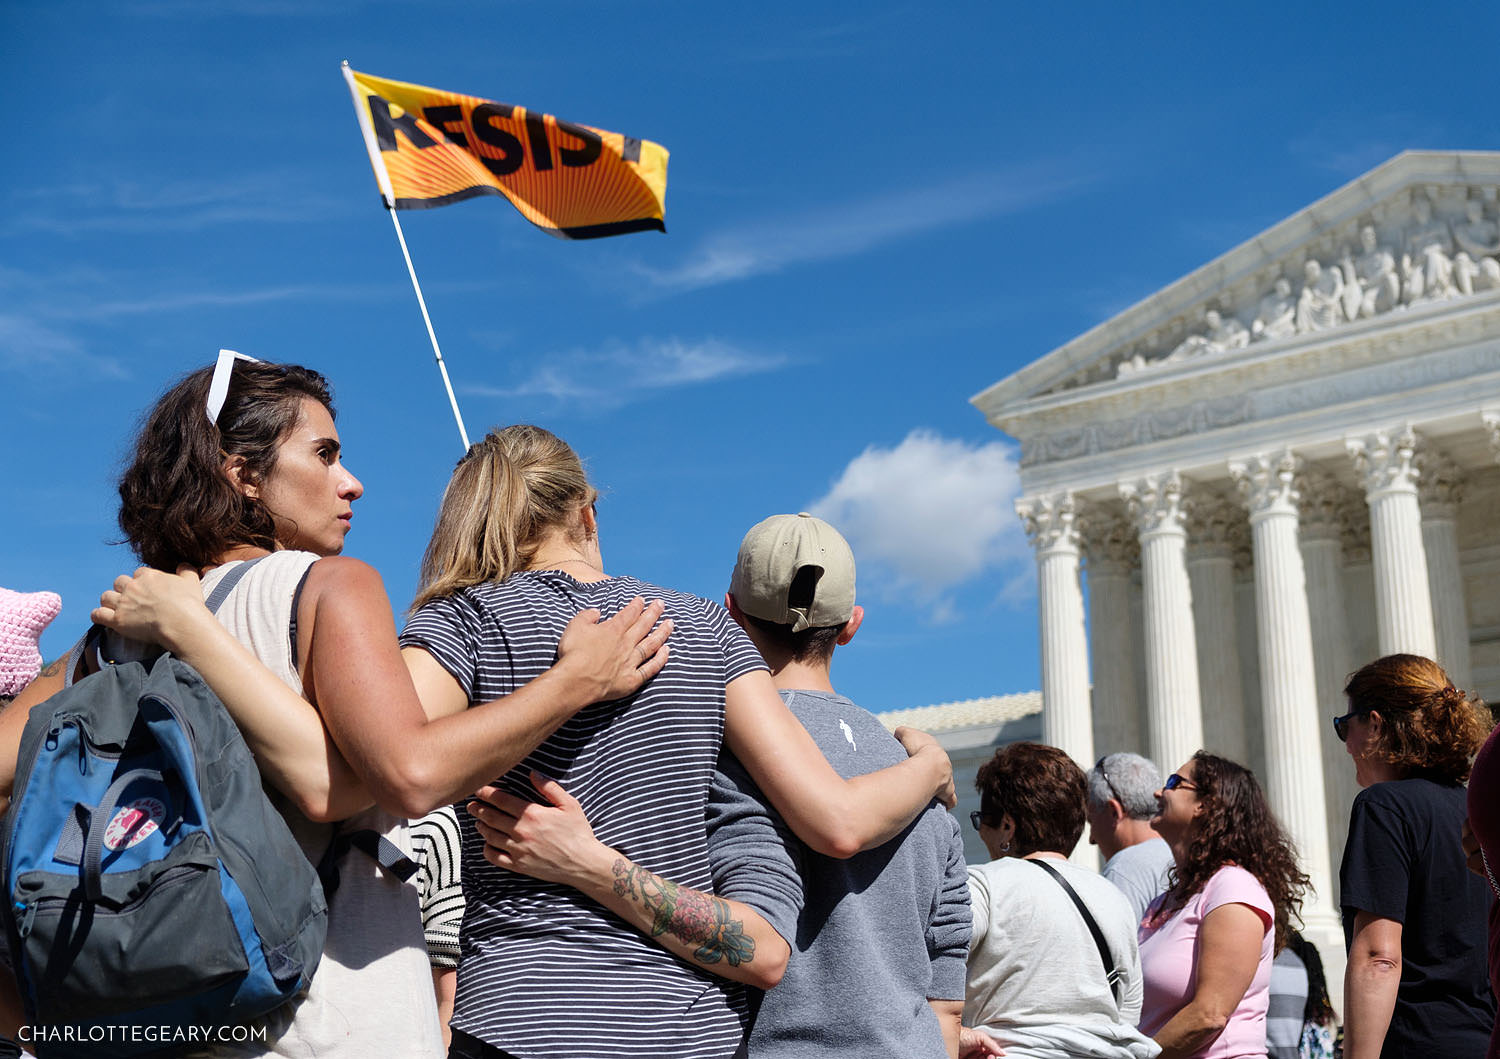 Anti-Kavanaugh protest rally at the Supreme Court (Washington, D.C.)